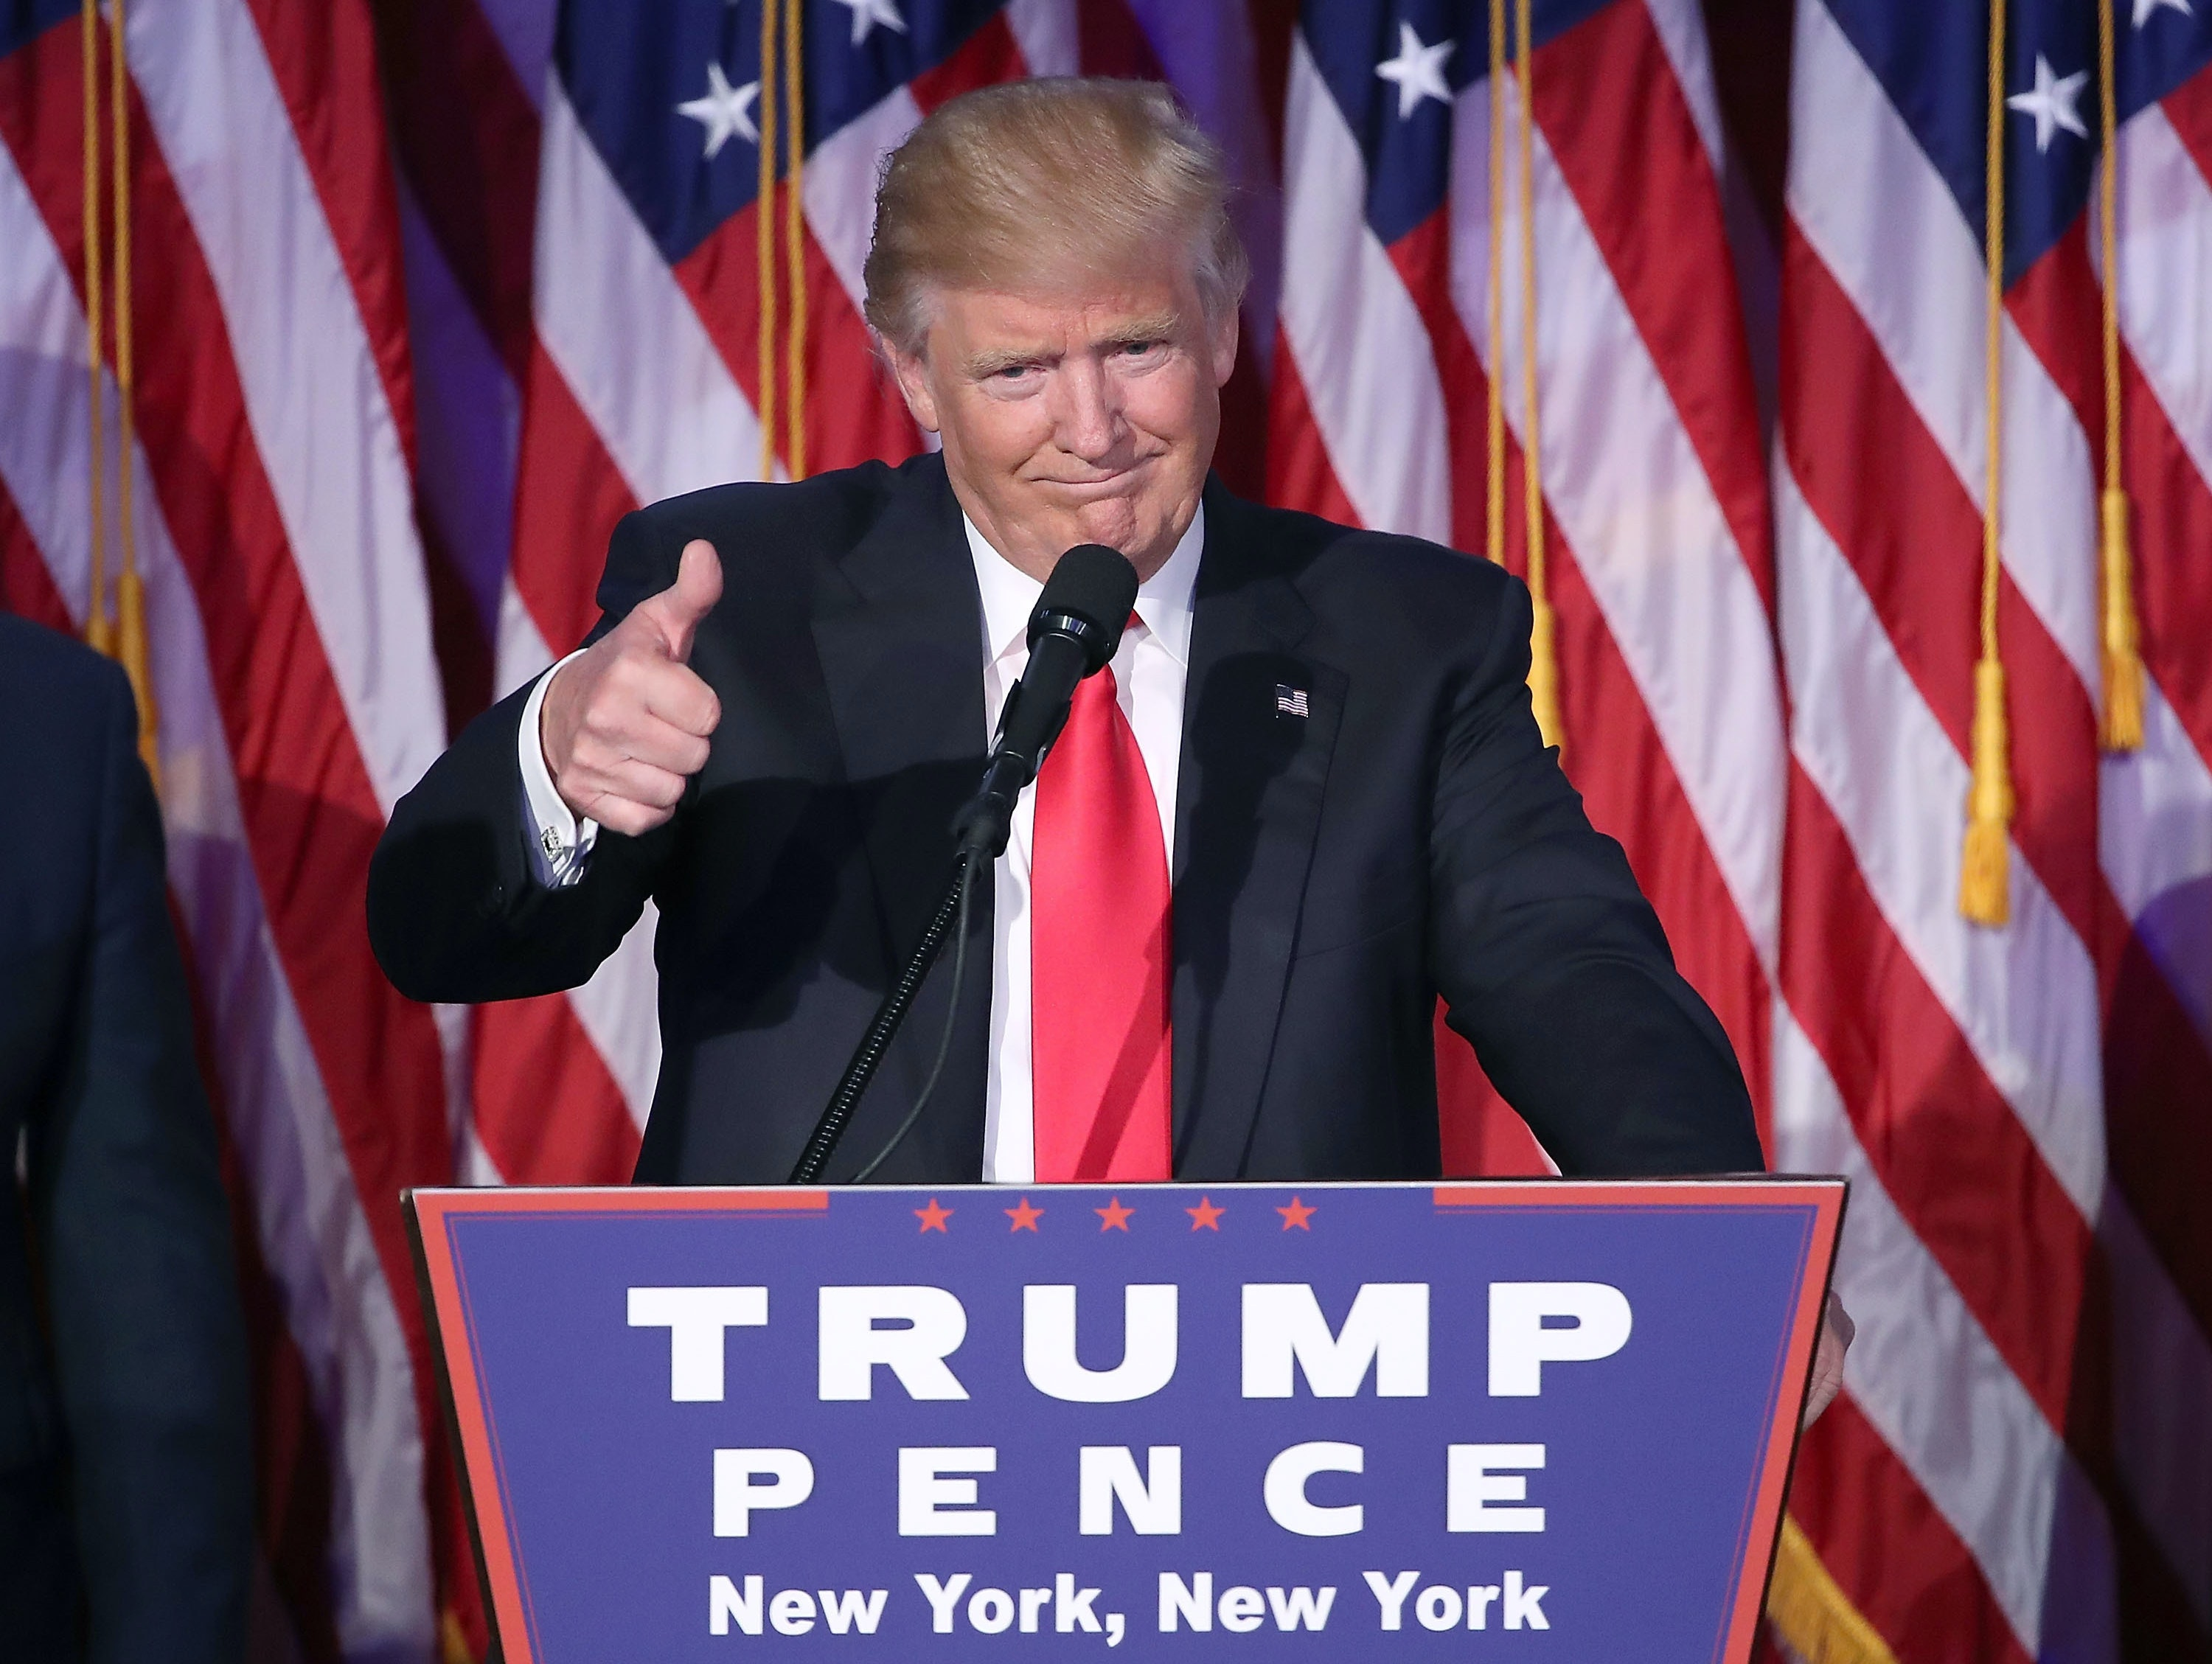 NEW YORK, NY - NOVEMBER 09:   Republican president-elect Donald Trump gives a thumbs up to the crowd during his acceptance speech at his election night event at the New York Hilton Midtown in the early morning hours of November 9, 2016 in New York City. Donald Trump defeated Democratic presidential nominee Hillary Clinton to become the 45th president of the United States. (Photo by Mark Wilson/Getty Images)